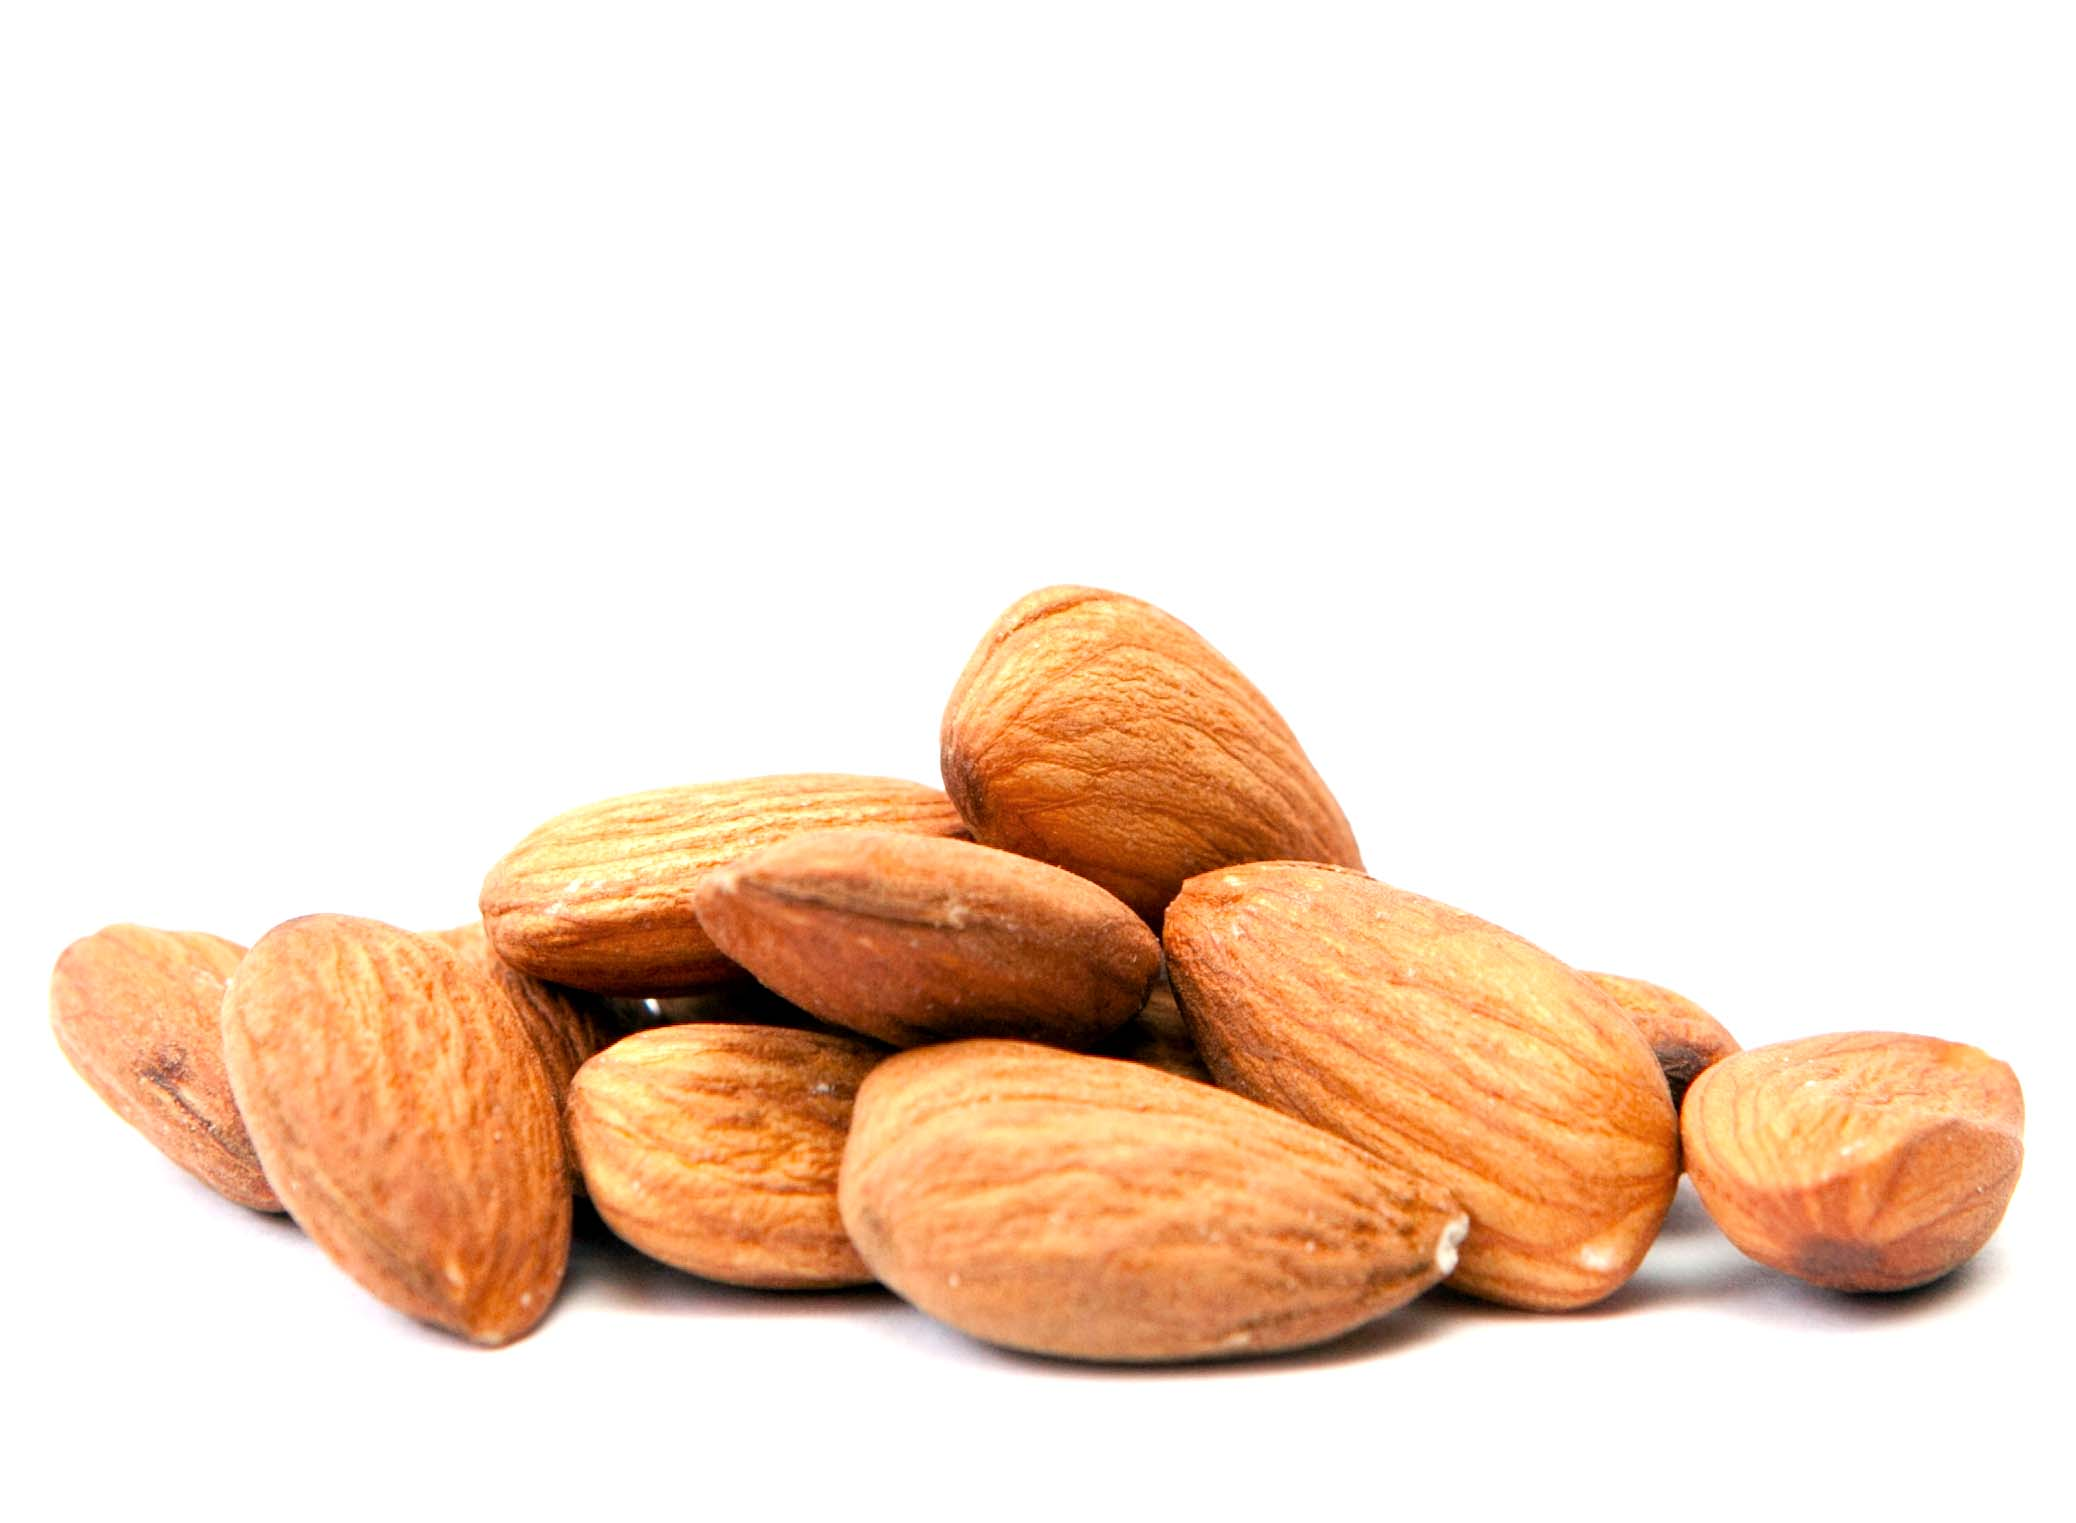 Men Should Eat Almonds for Testosterone Production